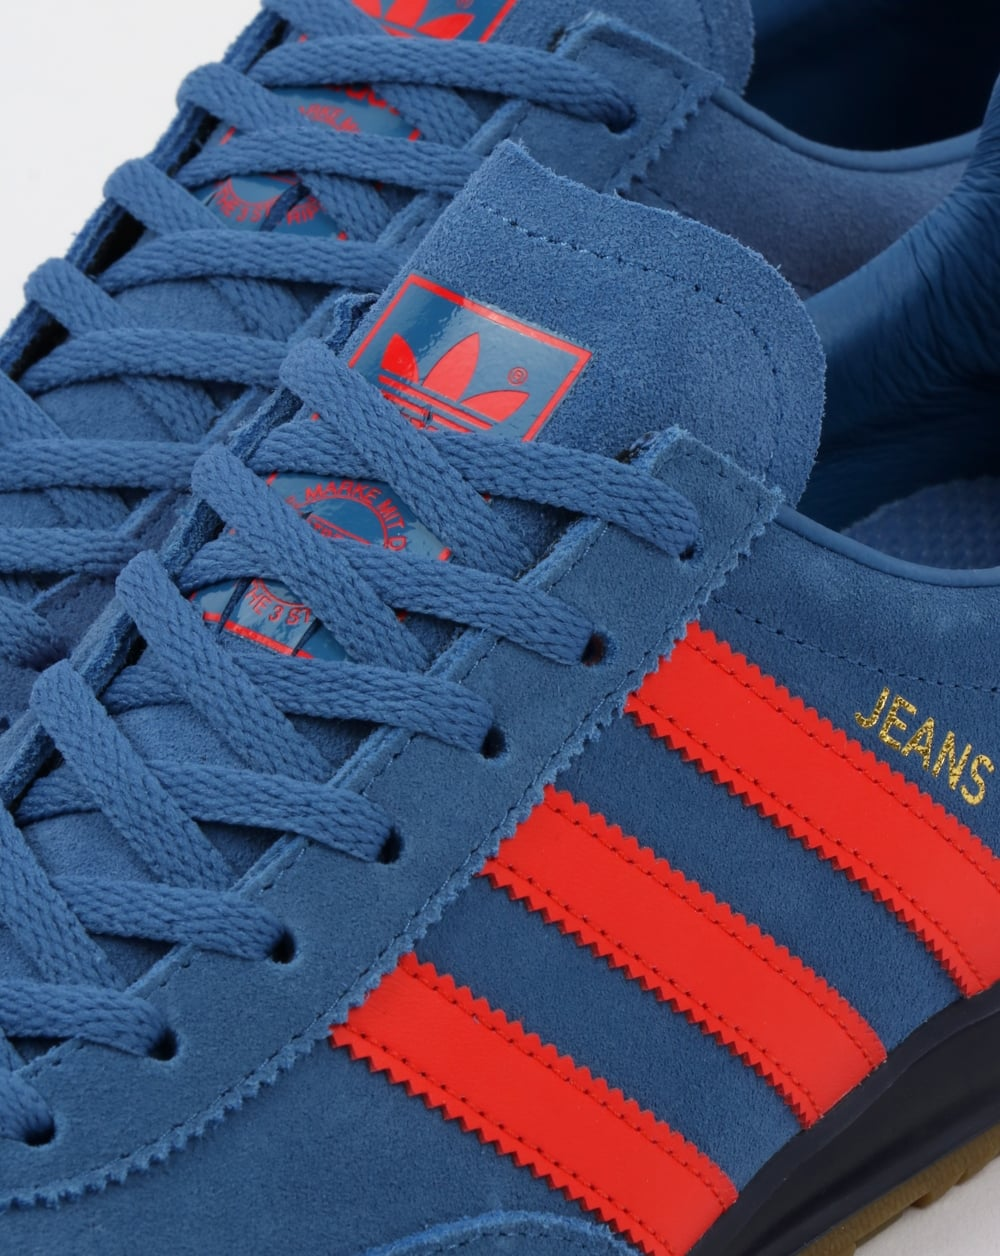 Cambiable busto Estrecho  adidas jeans mk2 blue and orange cheap online